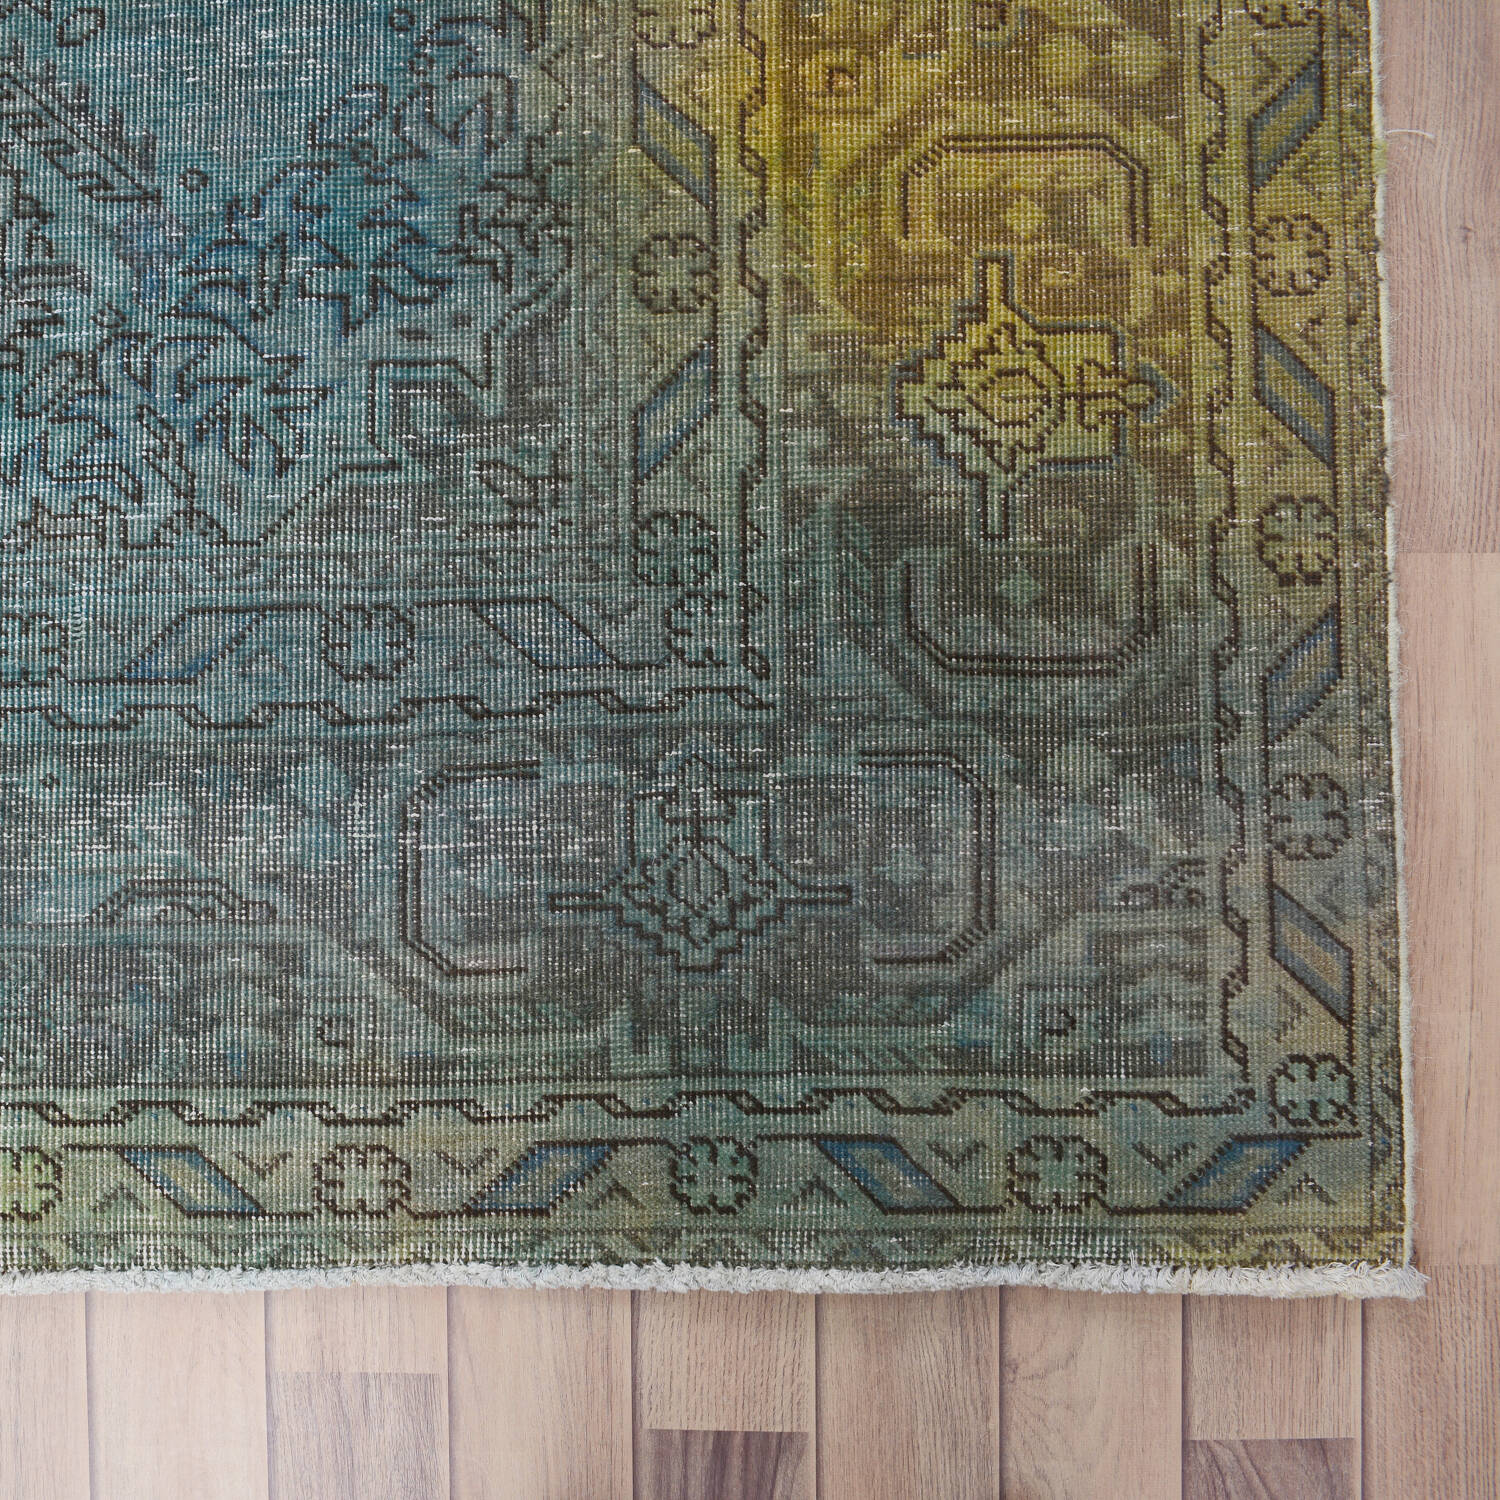 Antique Over Dyed Geometric Tabriz Persian Area Rug 10x13 image 5